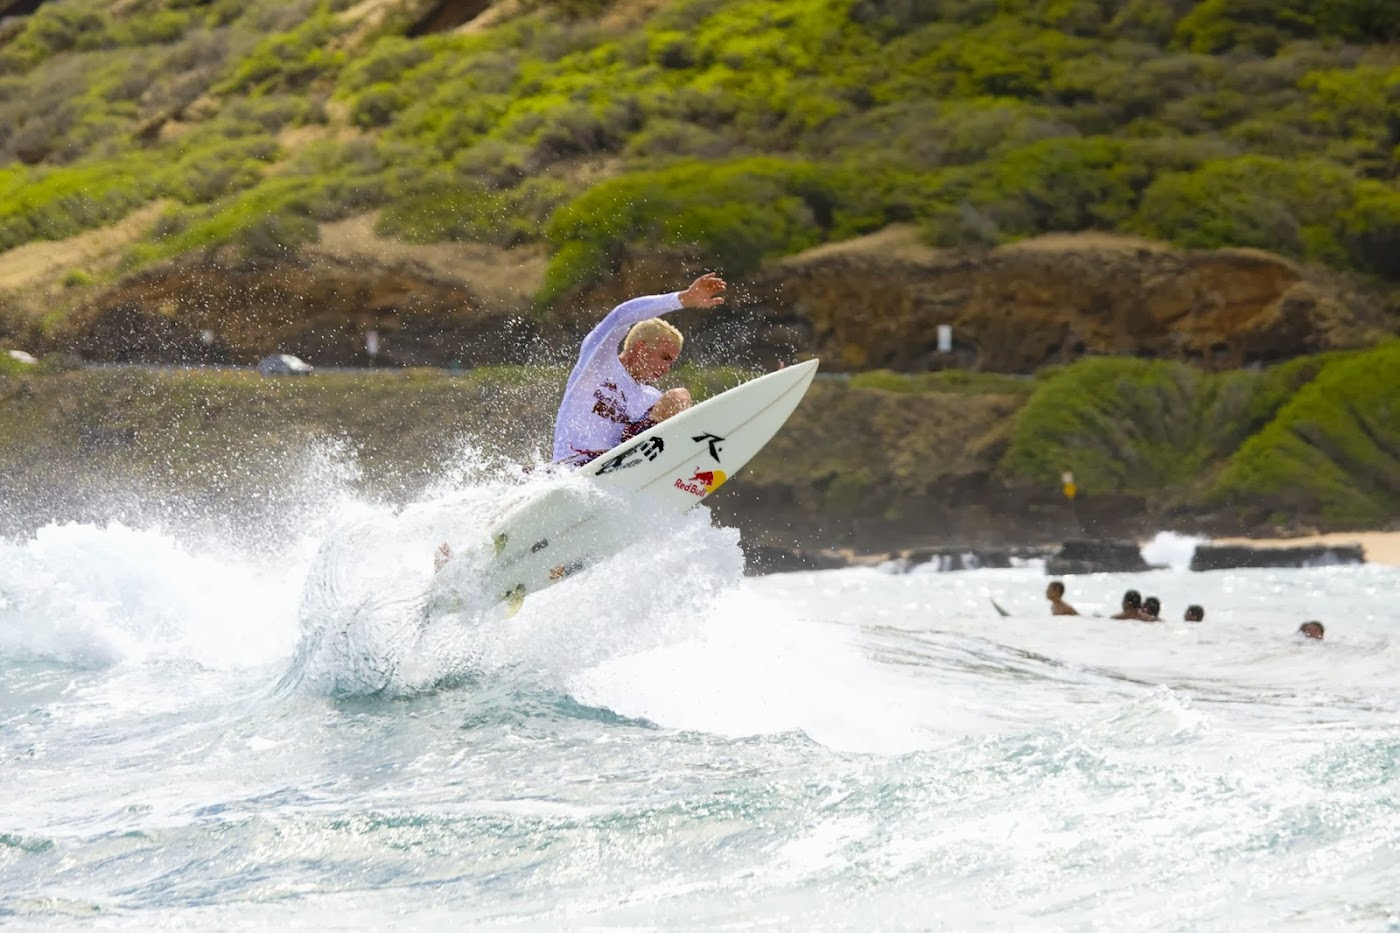 Red+Bull+Rivals_Zak+Noyle_Red+Bull+Content+Pool